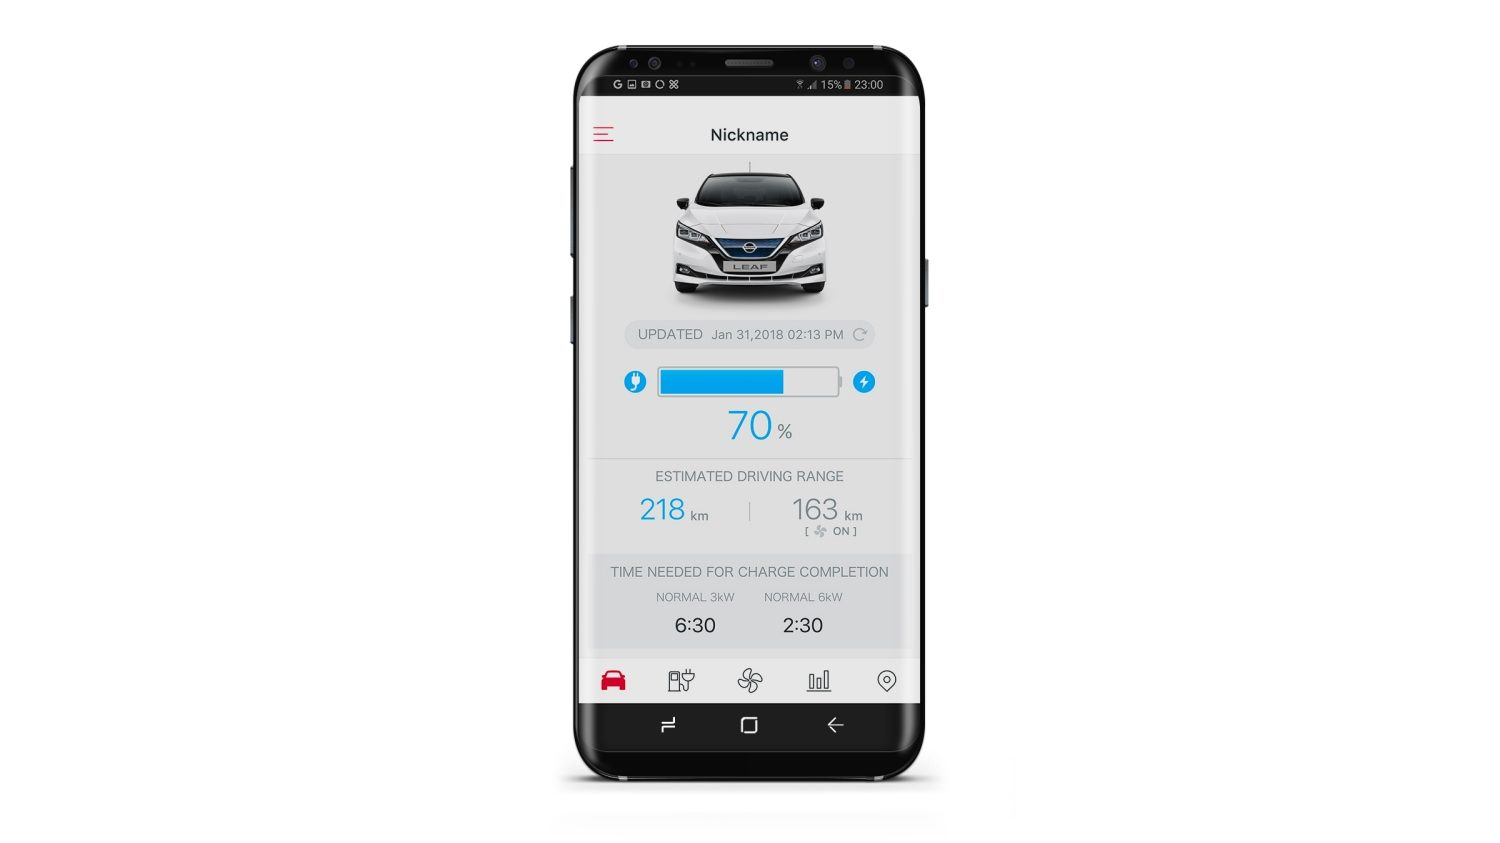 New Nissan LEAF Nissanconnect EV app